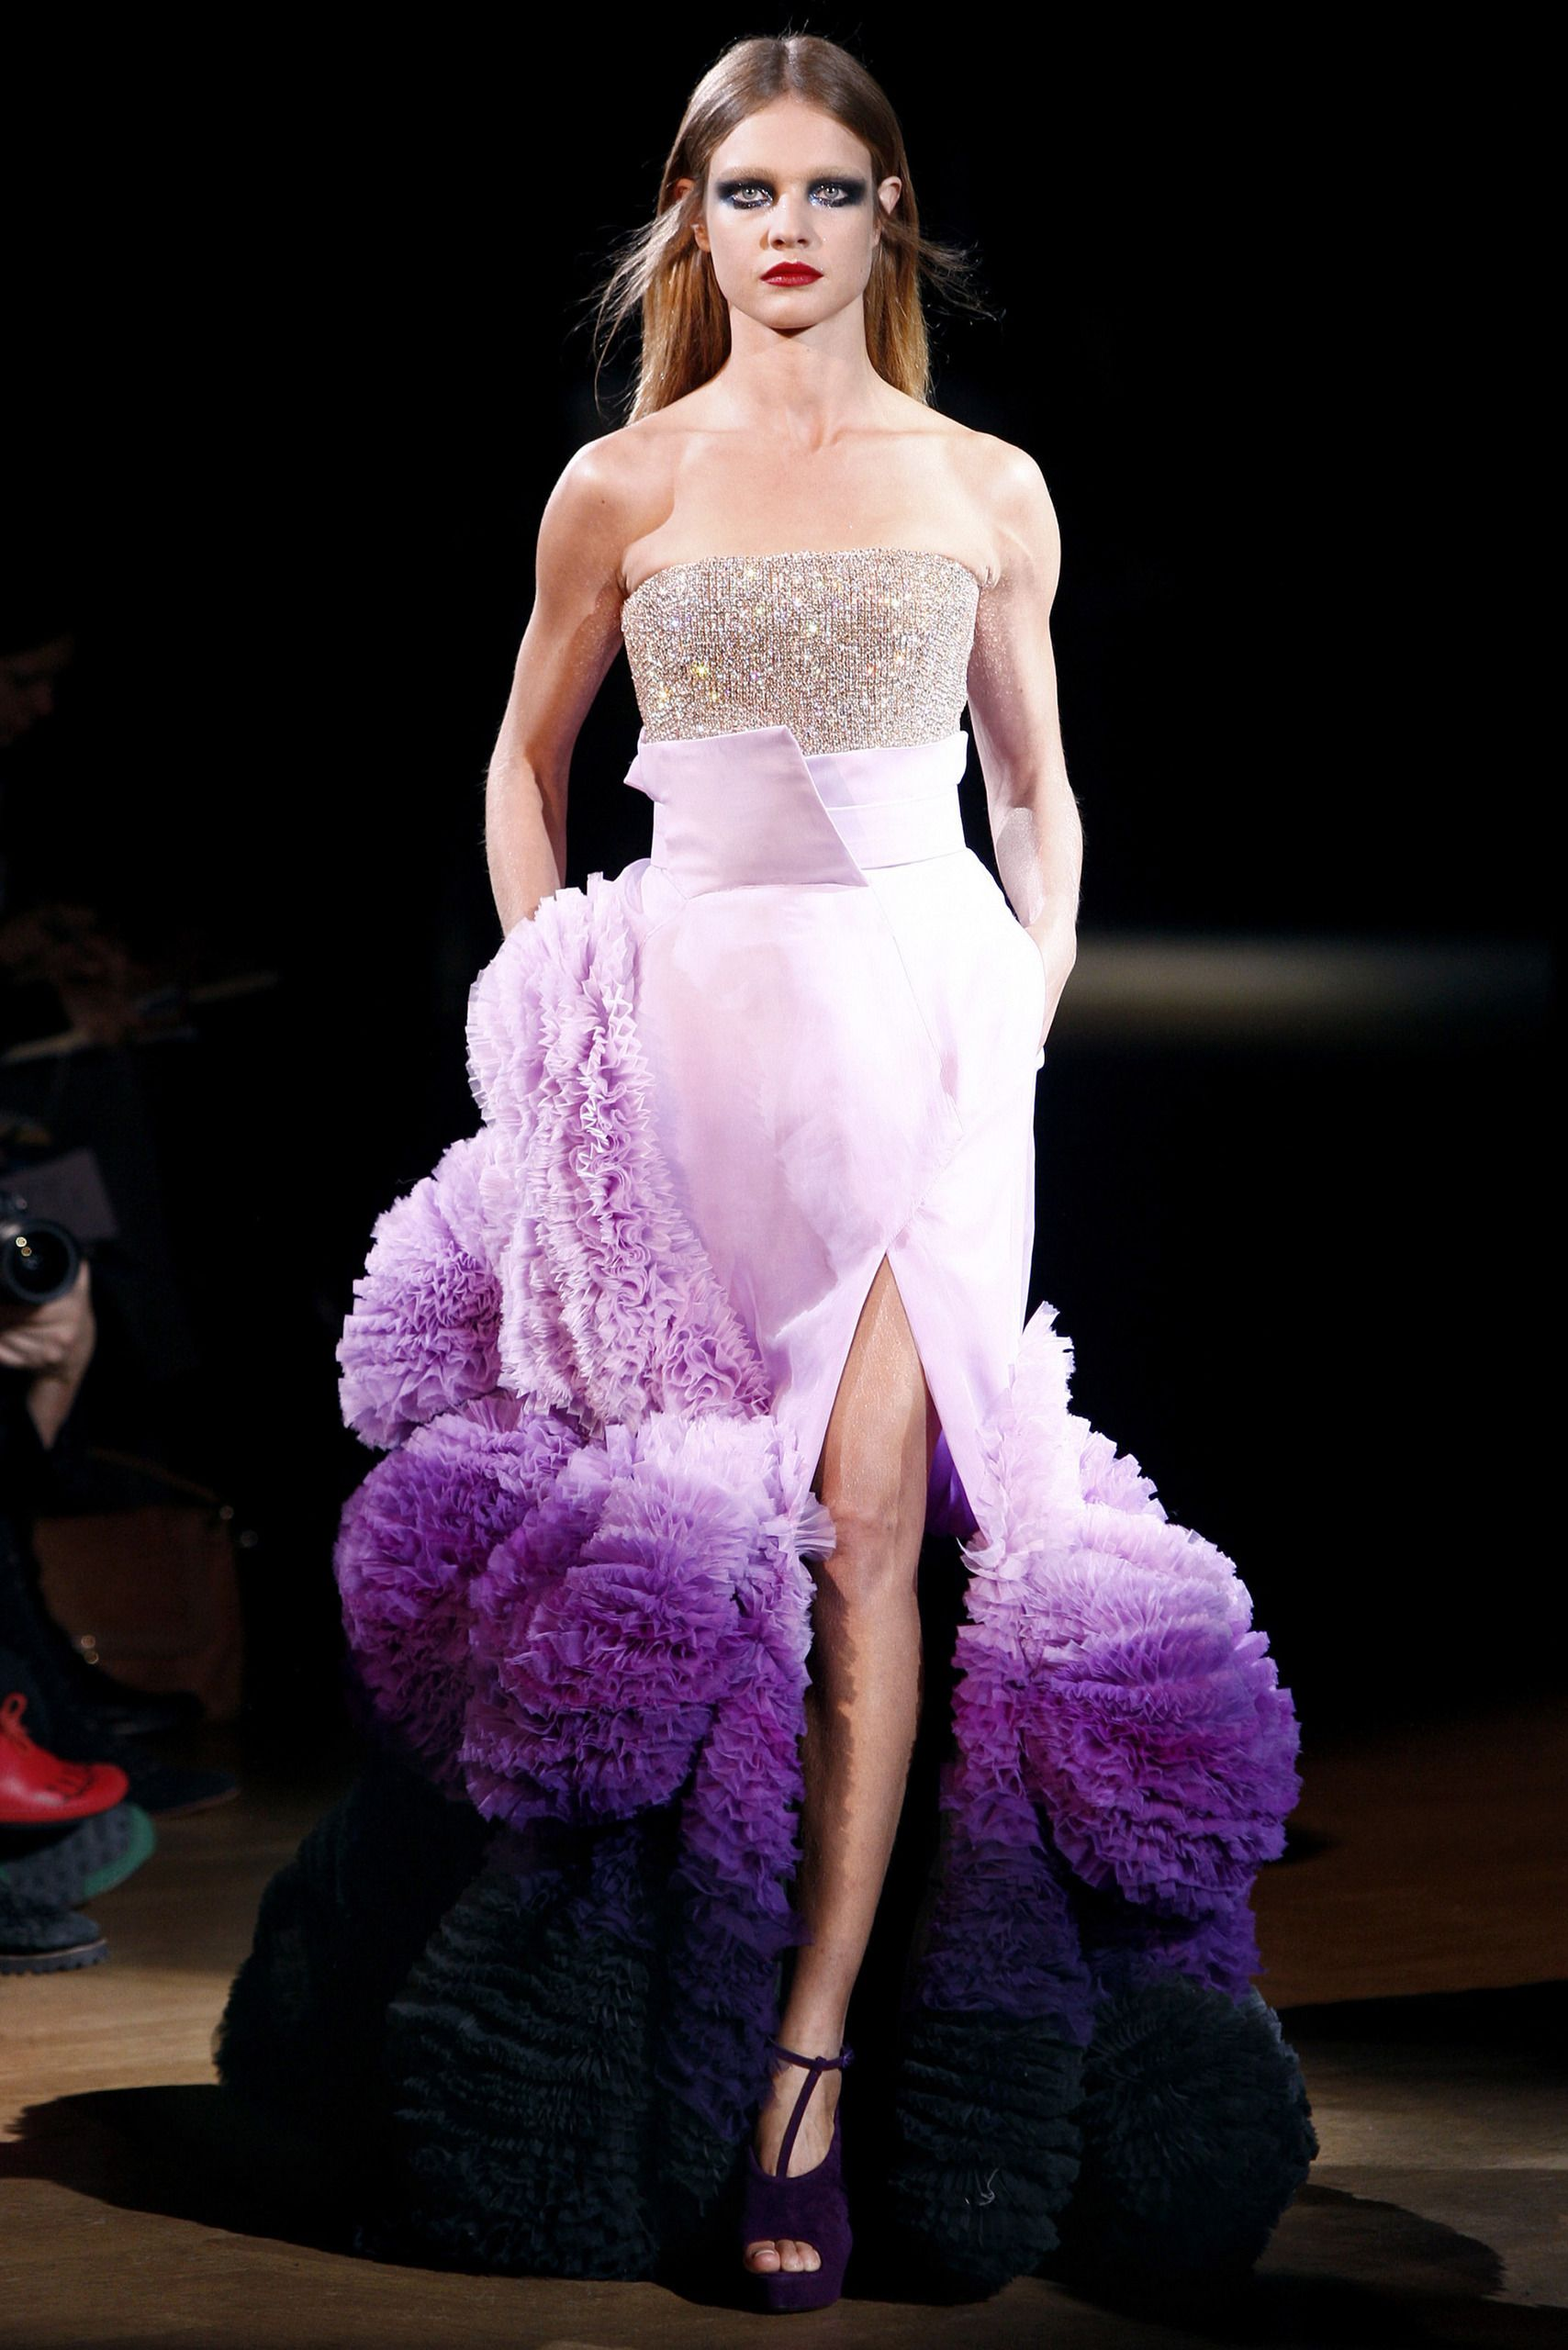 Givenchy...this is why I love fashion!!! OMFG!!! This dress is ...